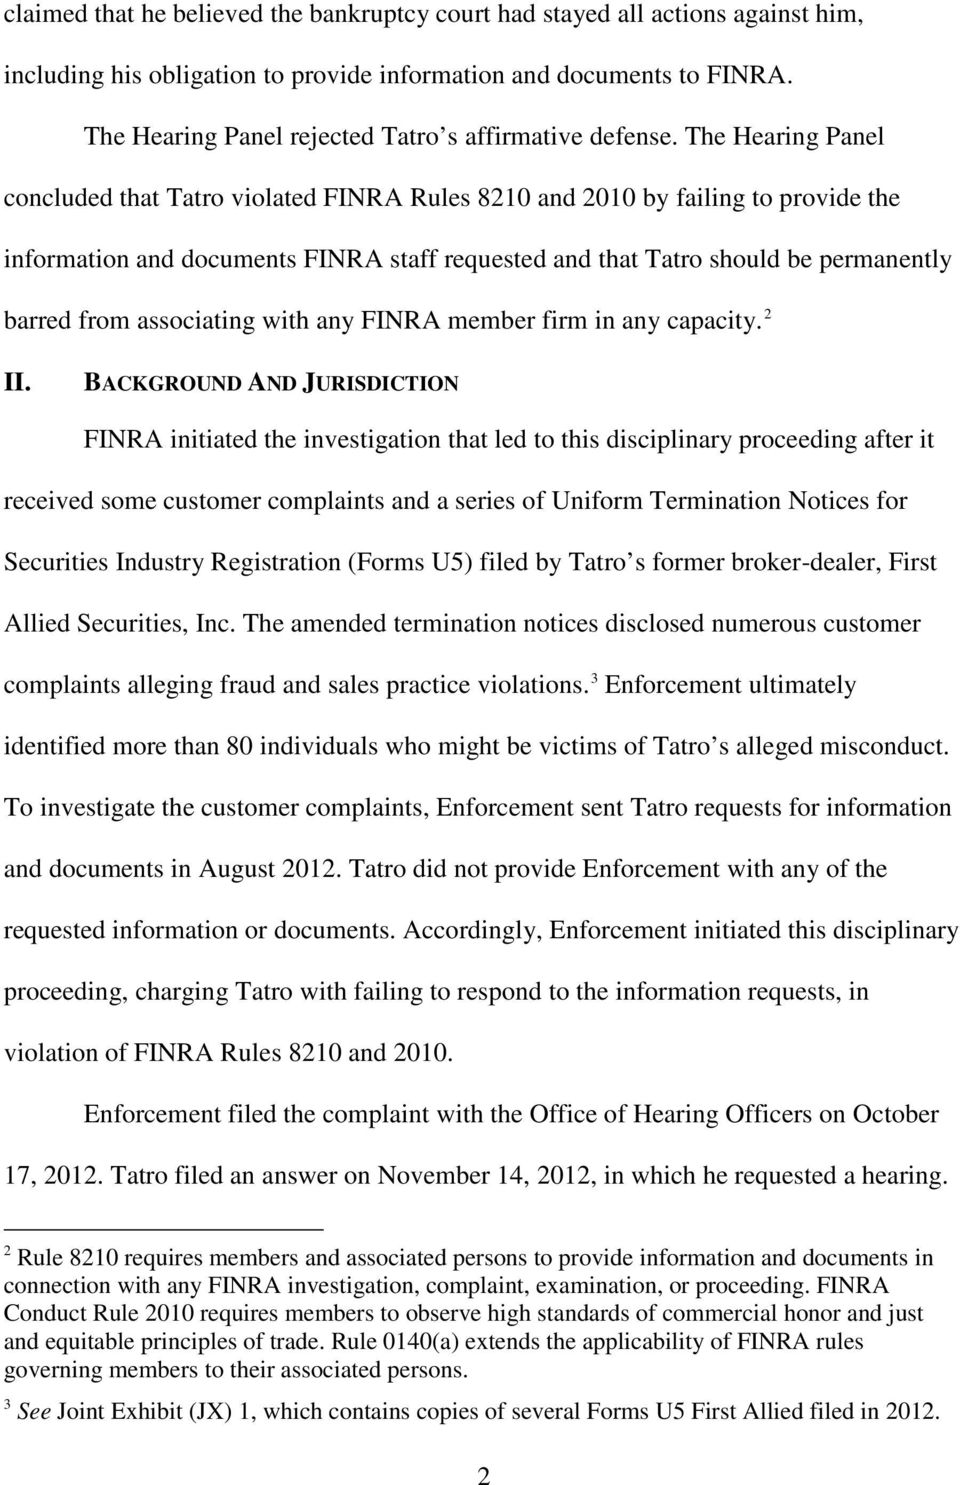 The Hearing Panel concluded that Tatro violated FINRA Rules 8210 and 2010 by failing to provide the information and documents FINRA staff requested and that Tatro should be permanently barred from